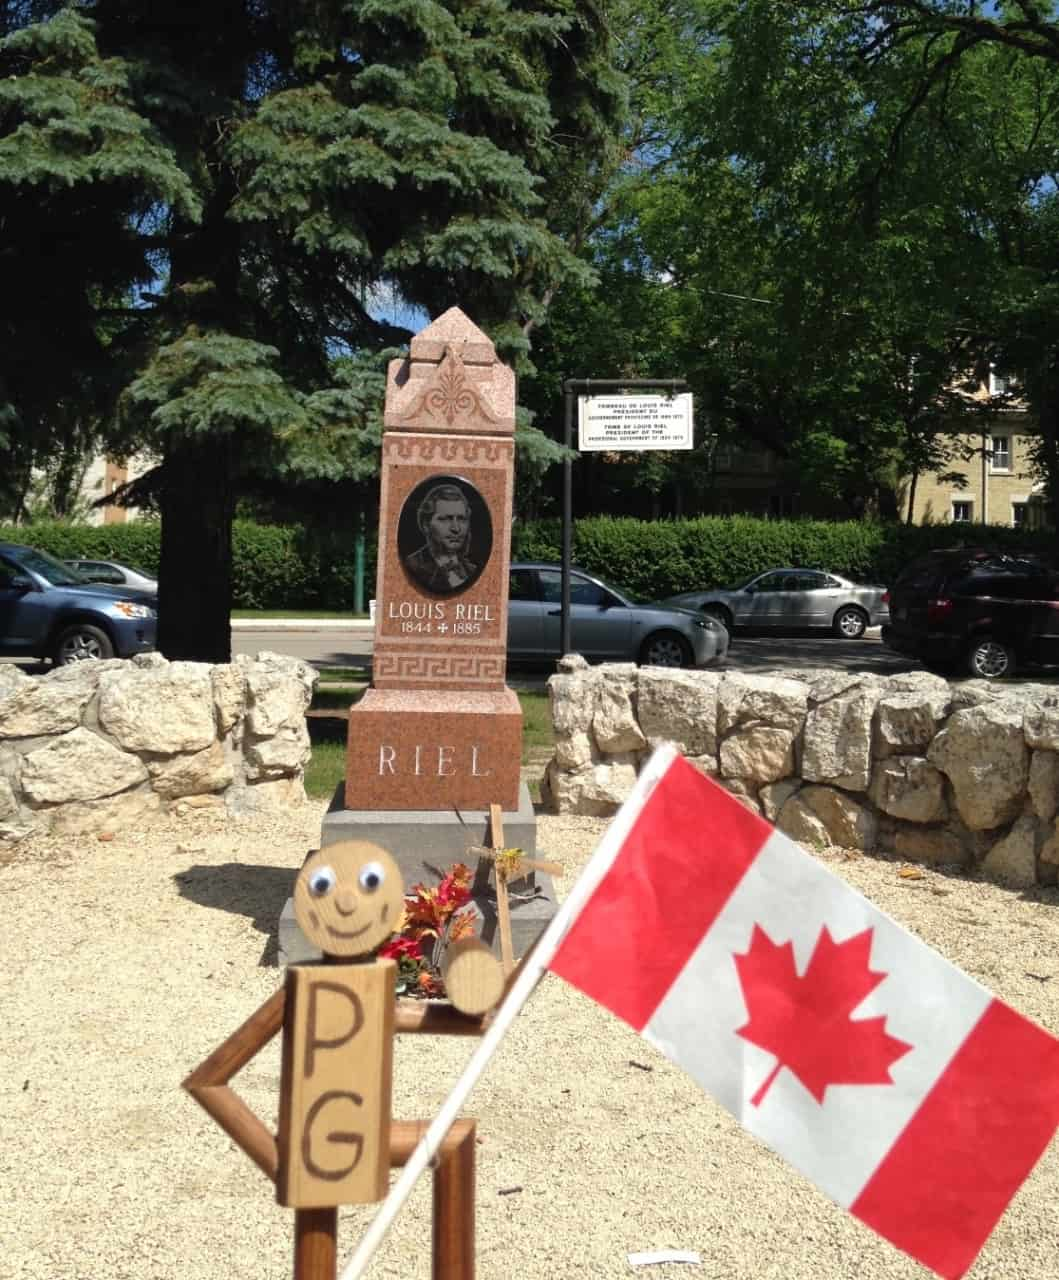 3228381575a0b867afcf2ff3.jpg - St. Boniface, Winnipeg, MB - Across Canada in search of #BIGselfies trip 2014<br />Another one of those important and interesting people buried here in Winnipeg